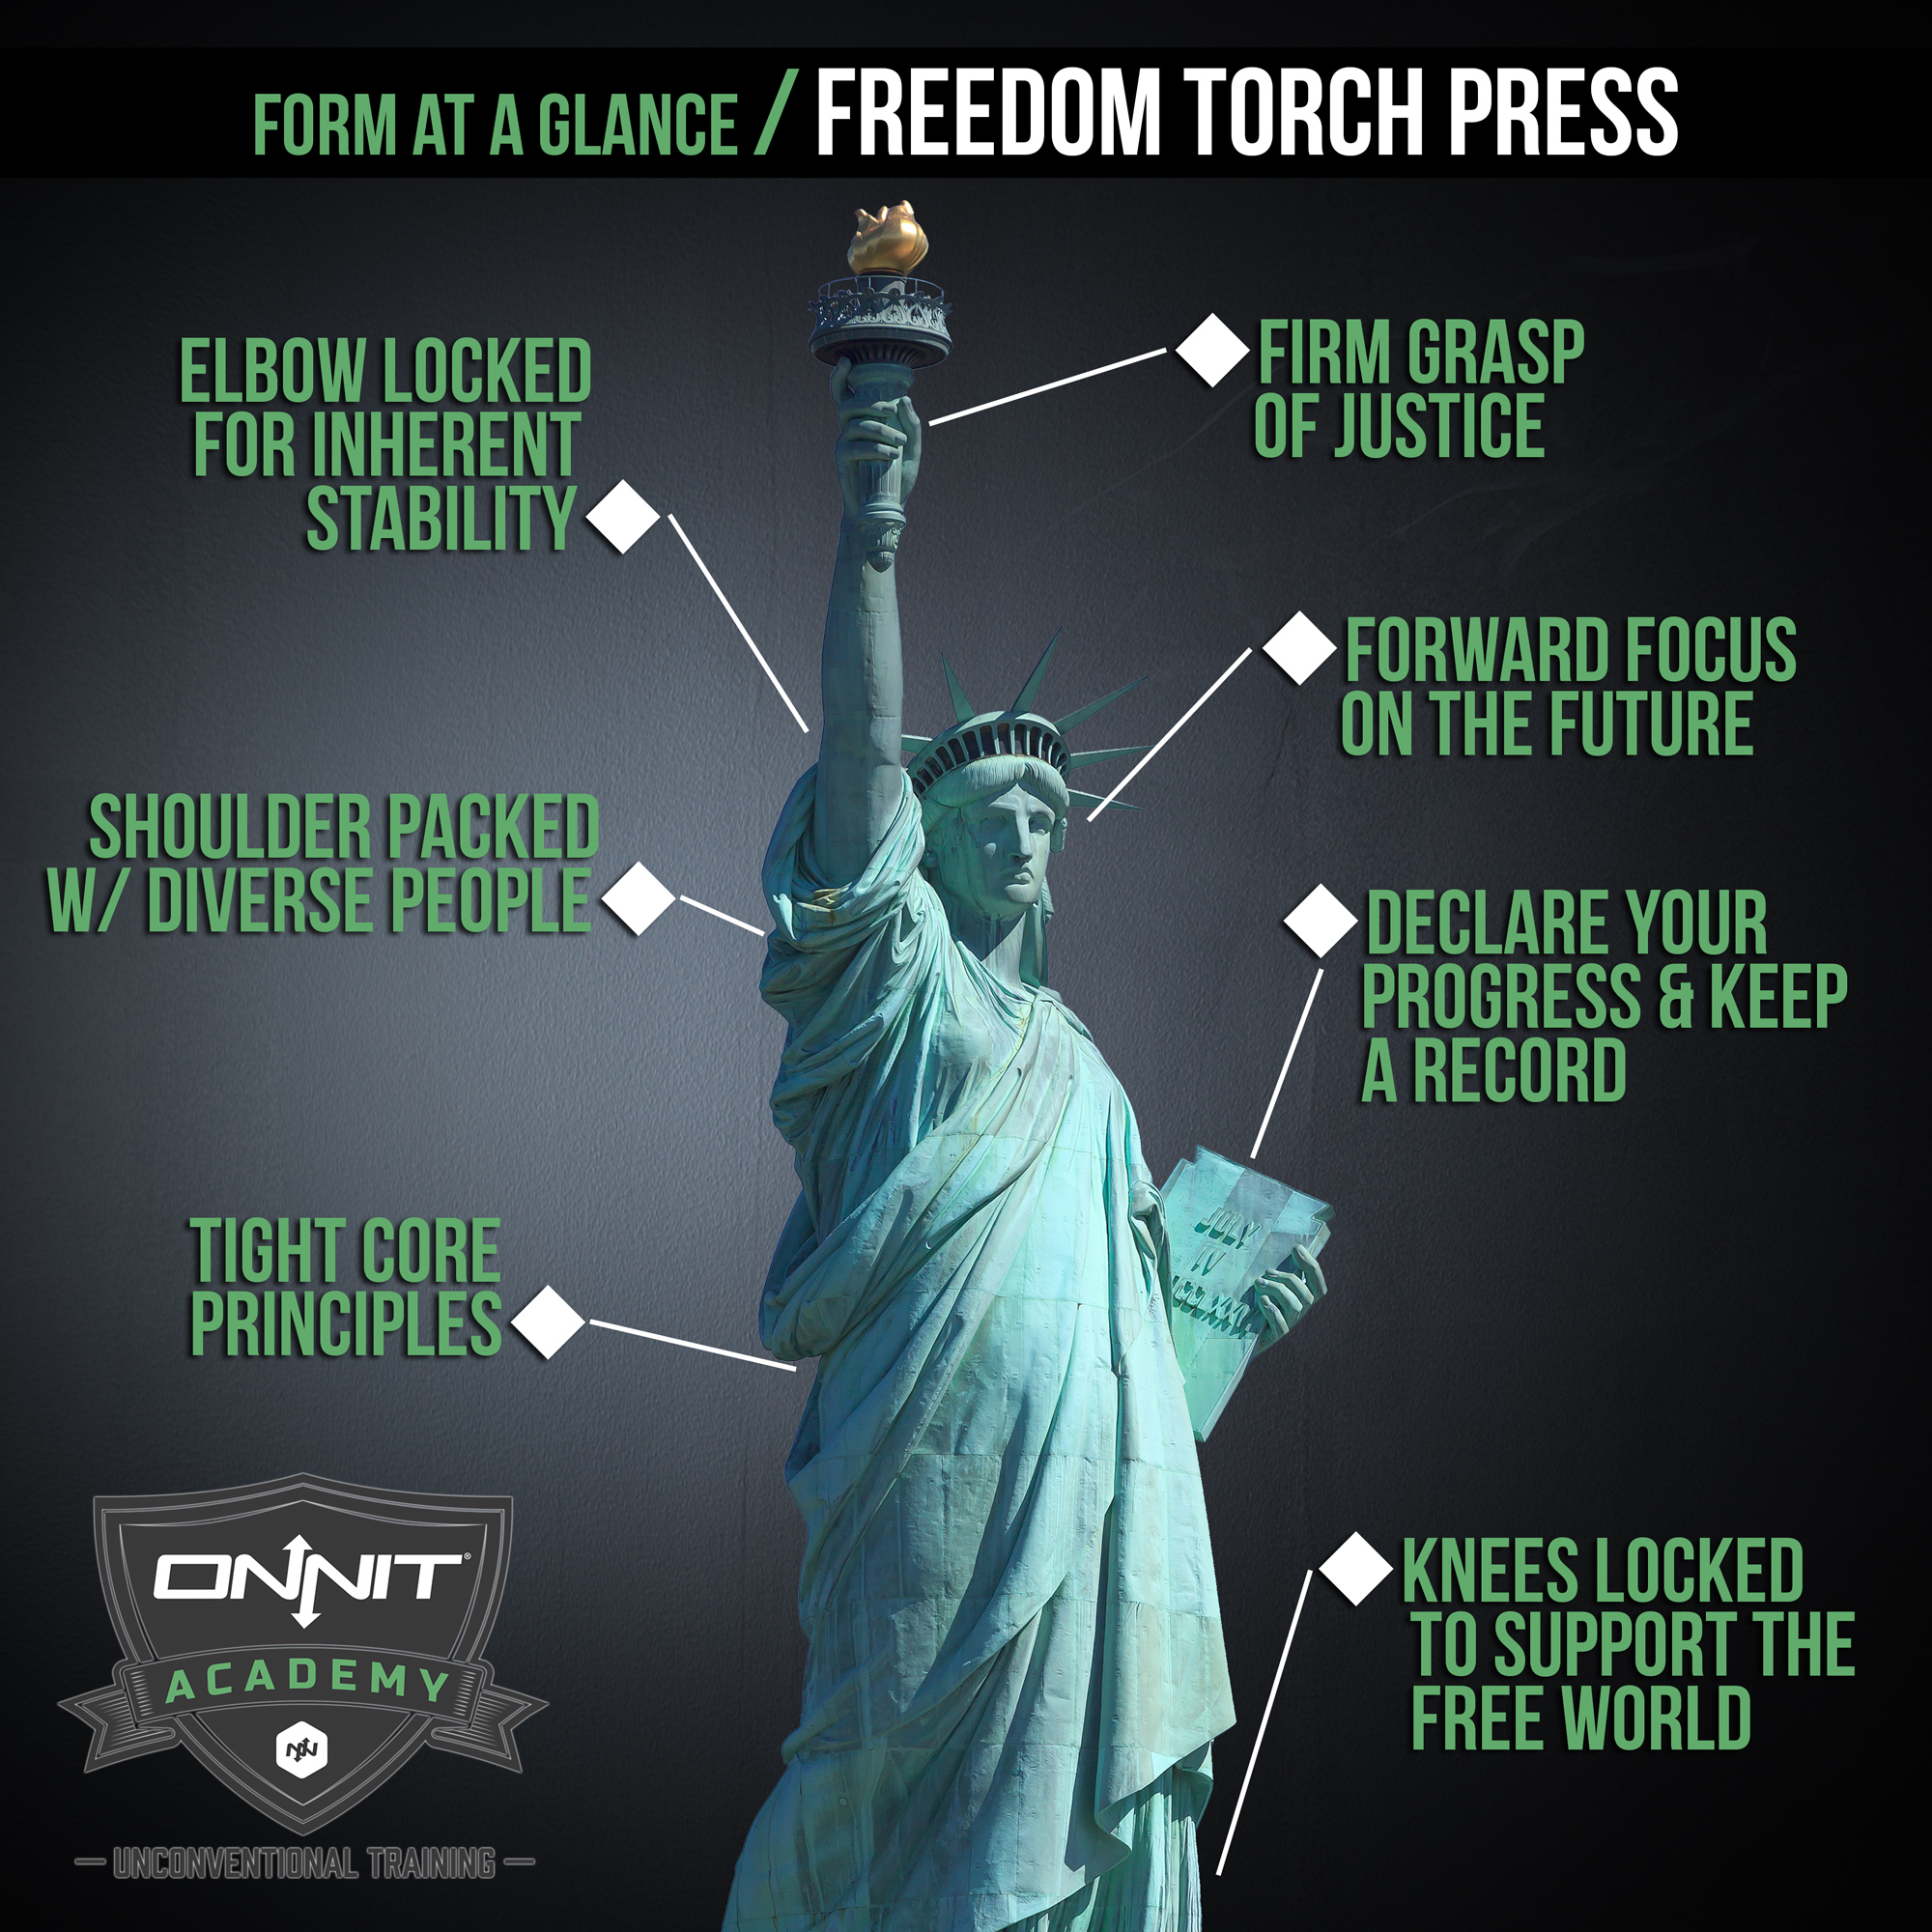 Form At A Glance Kettlebell Windmill: Form At A Glance: Torch Press